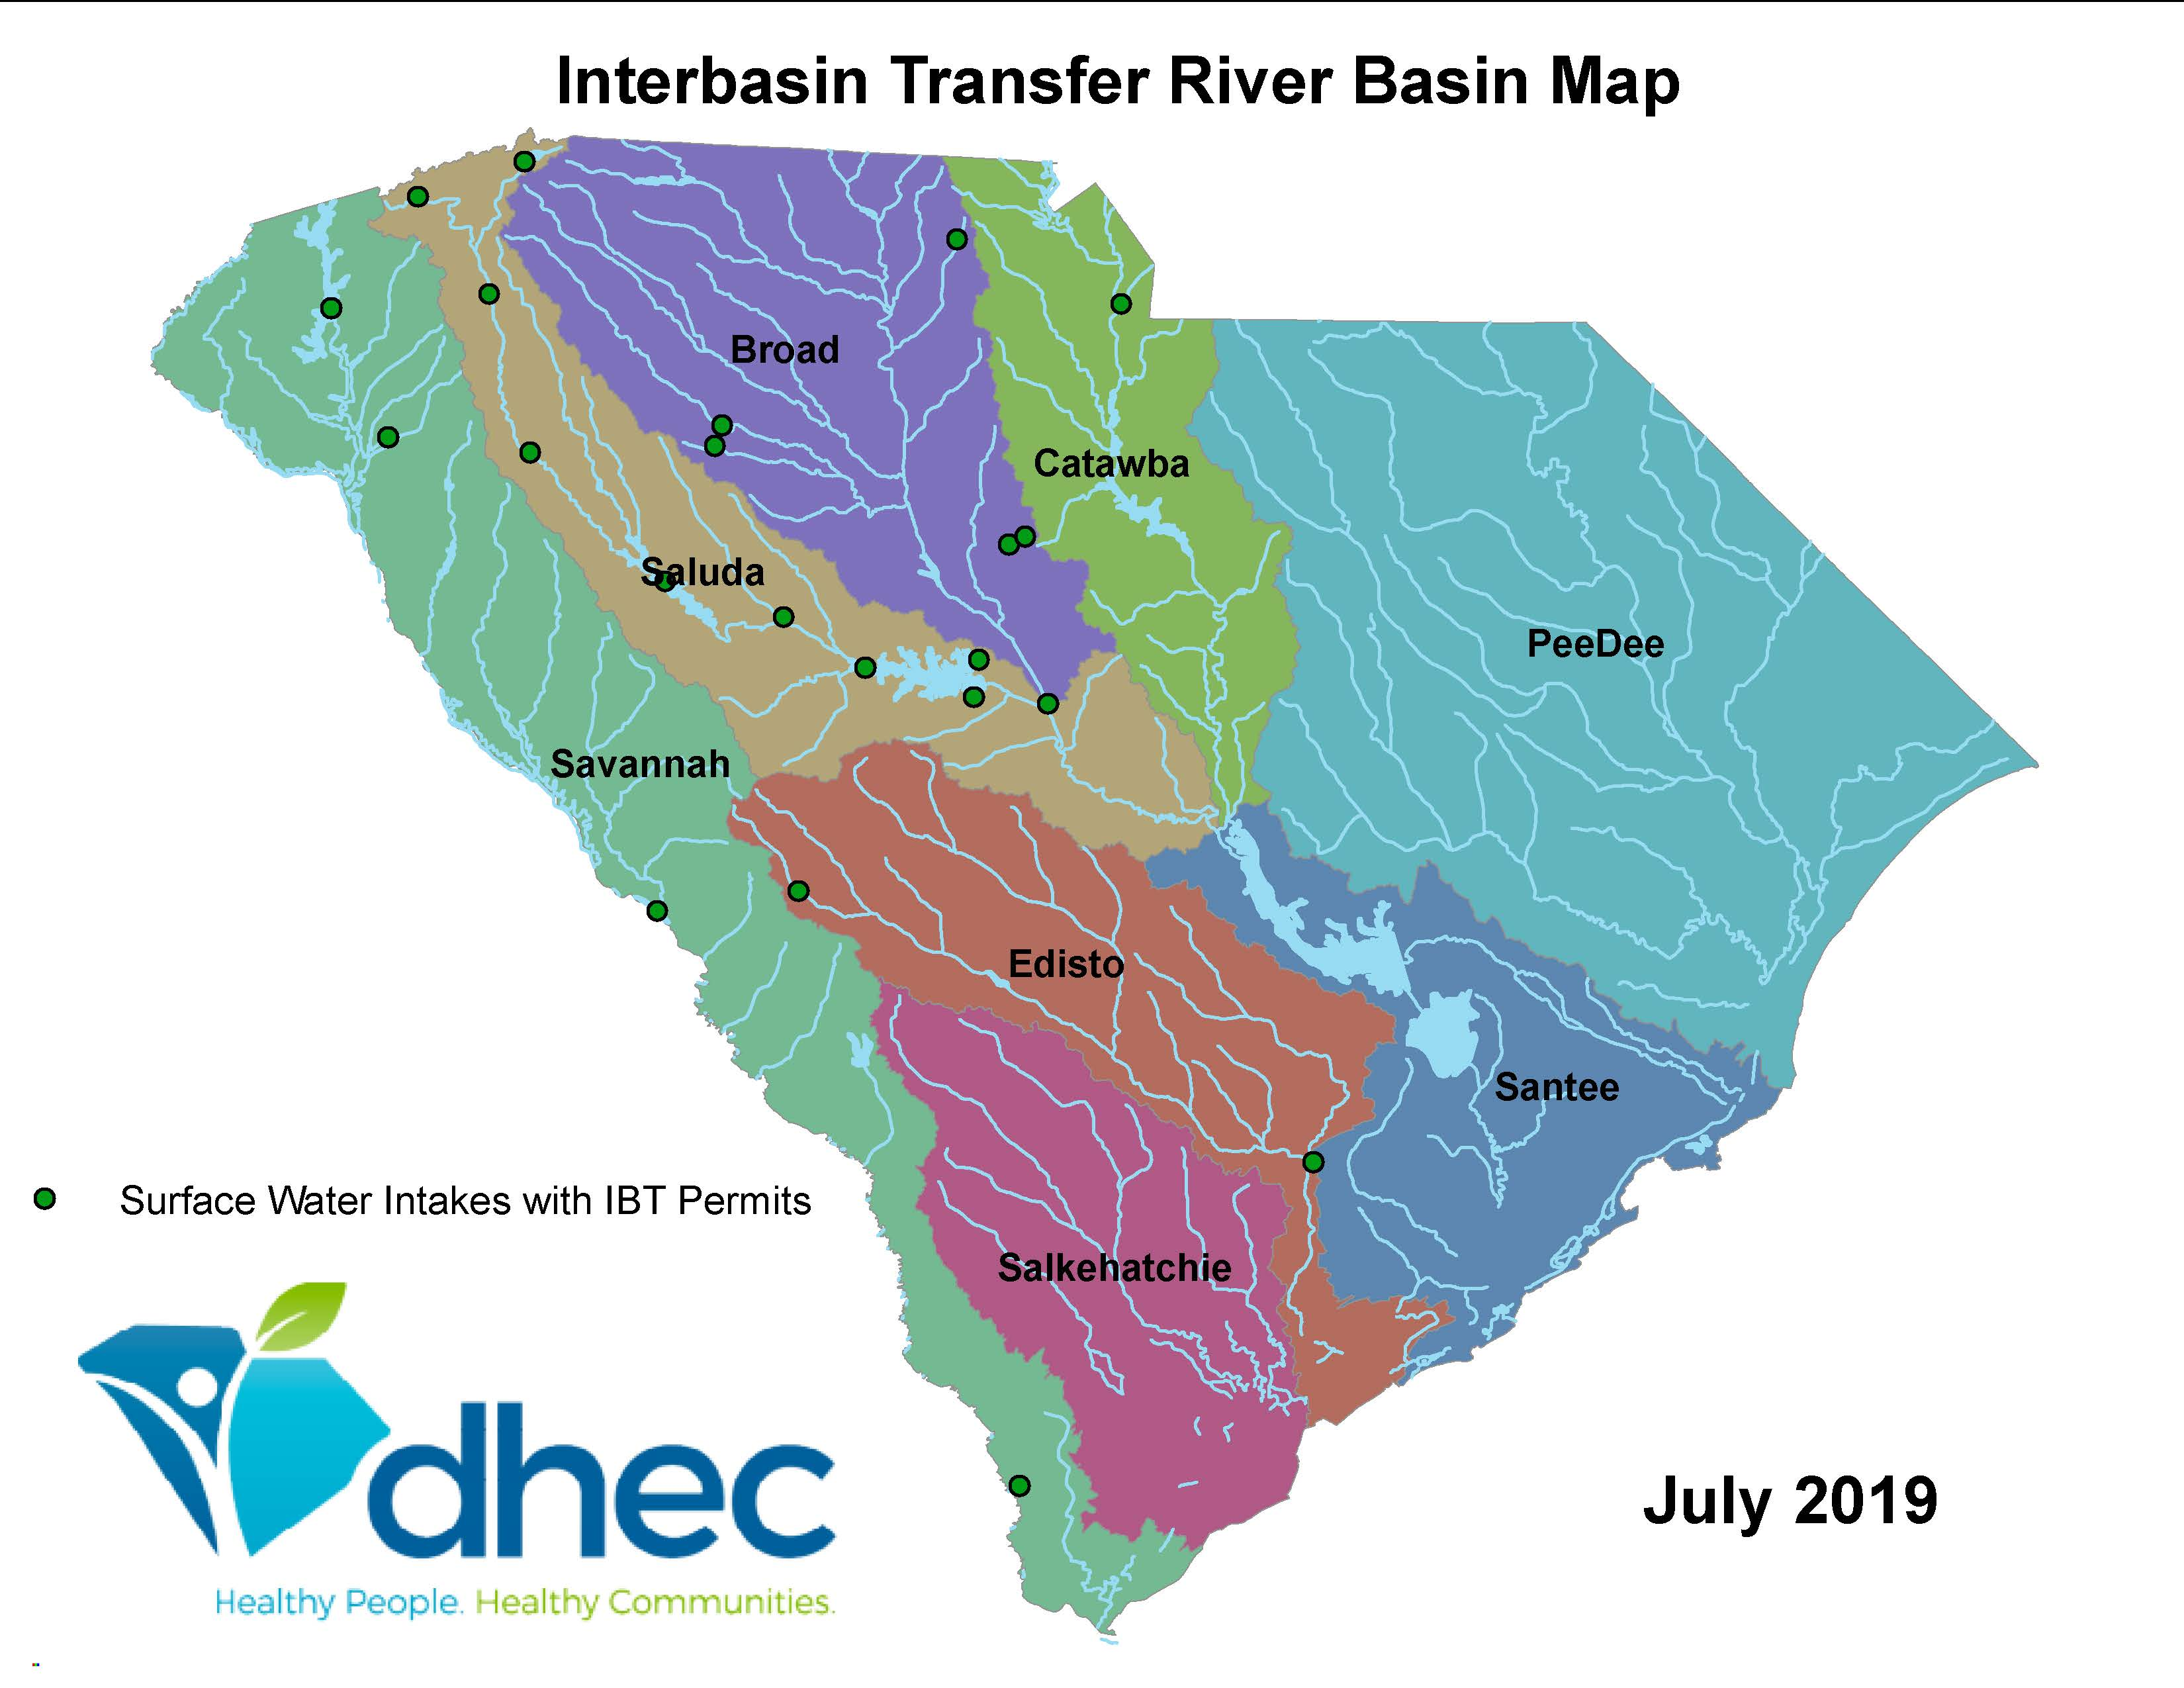 The following map of South Carolina illustrates the 8 major river basins of the state and the locations of surface water intakes are located for interbasin transfers or IBT.